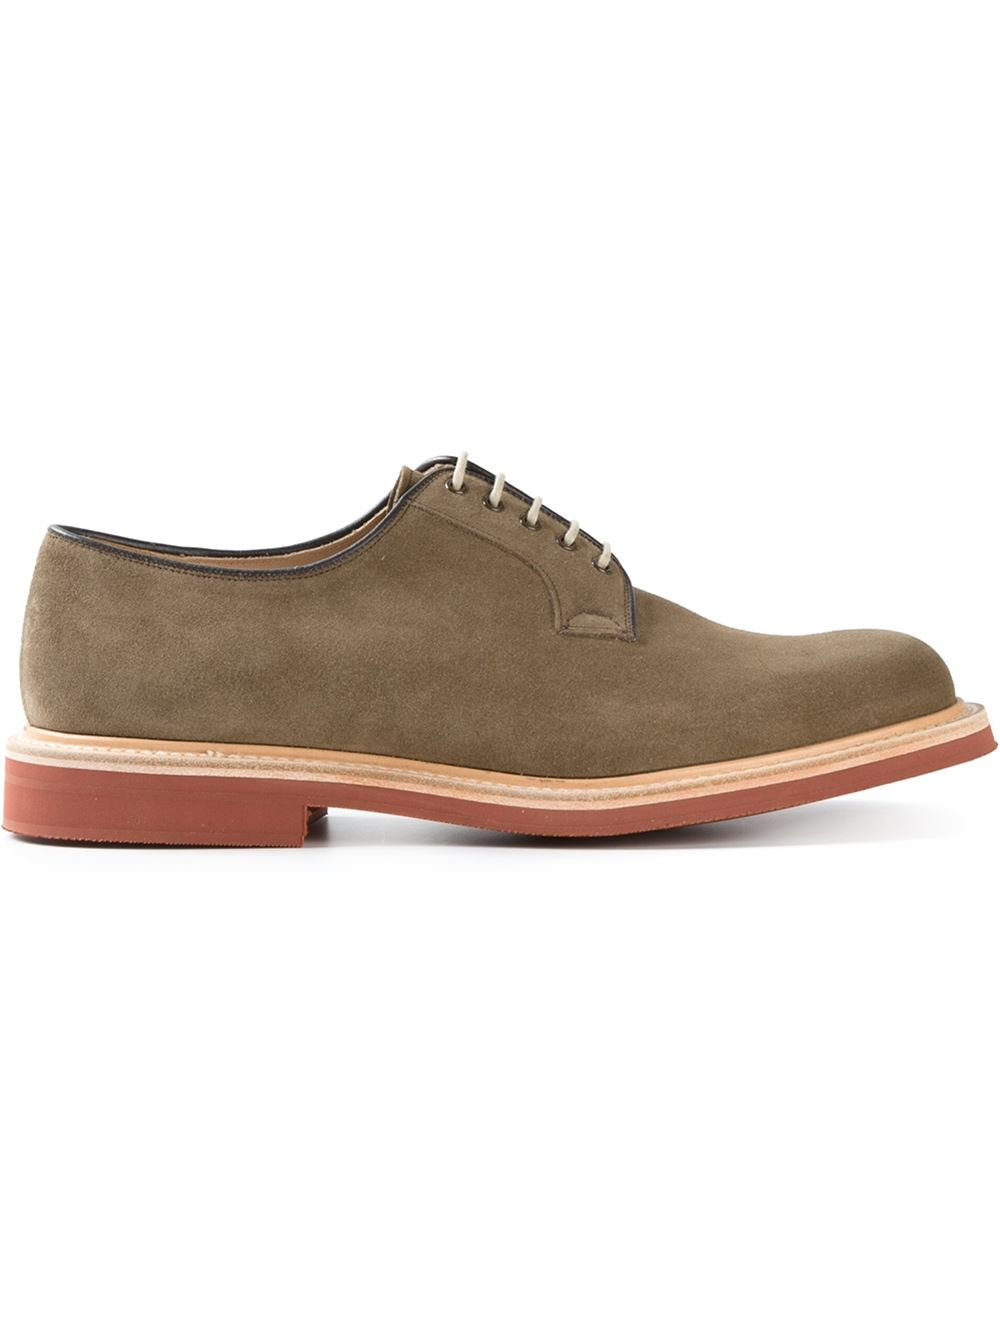 church s derby shoes in beige for neutrals lyst